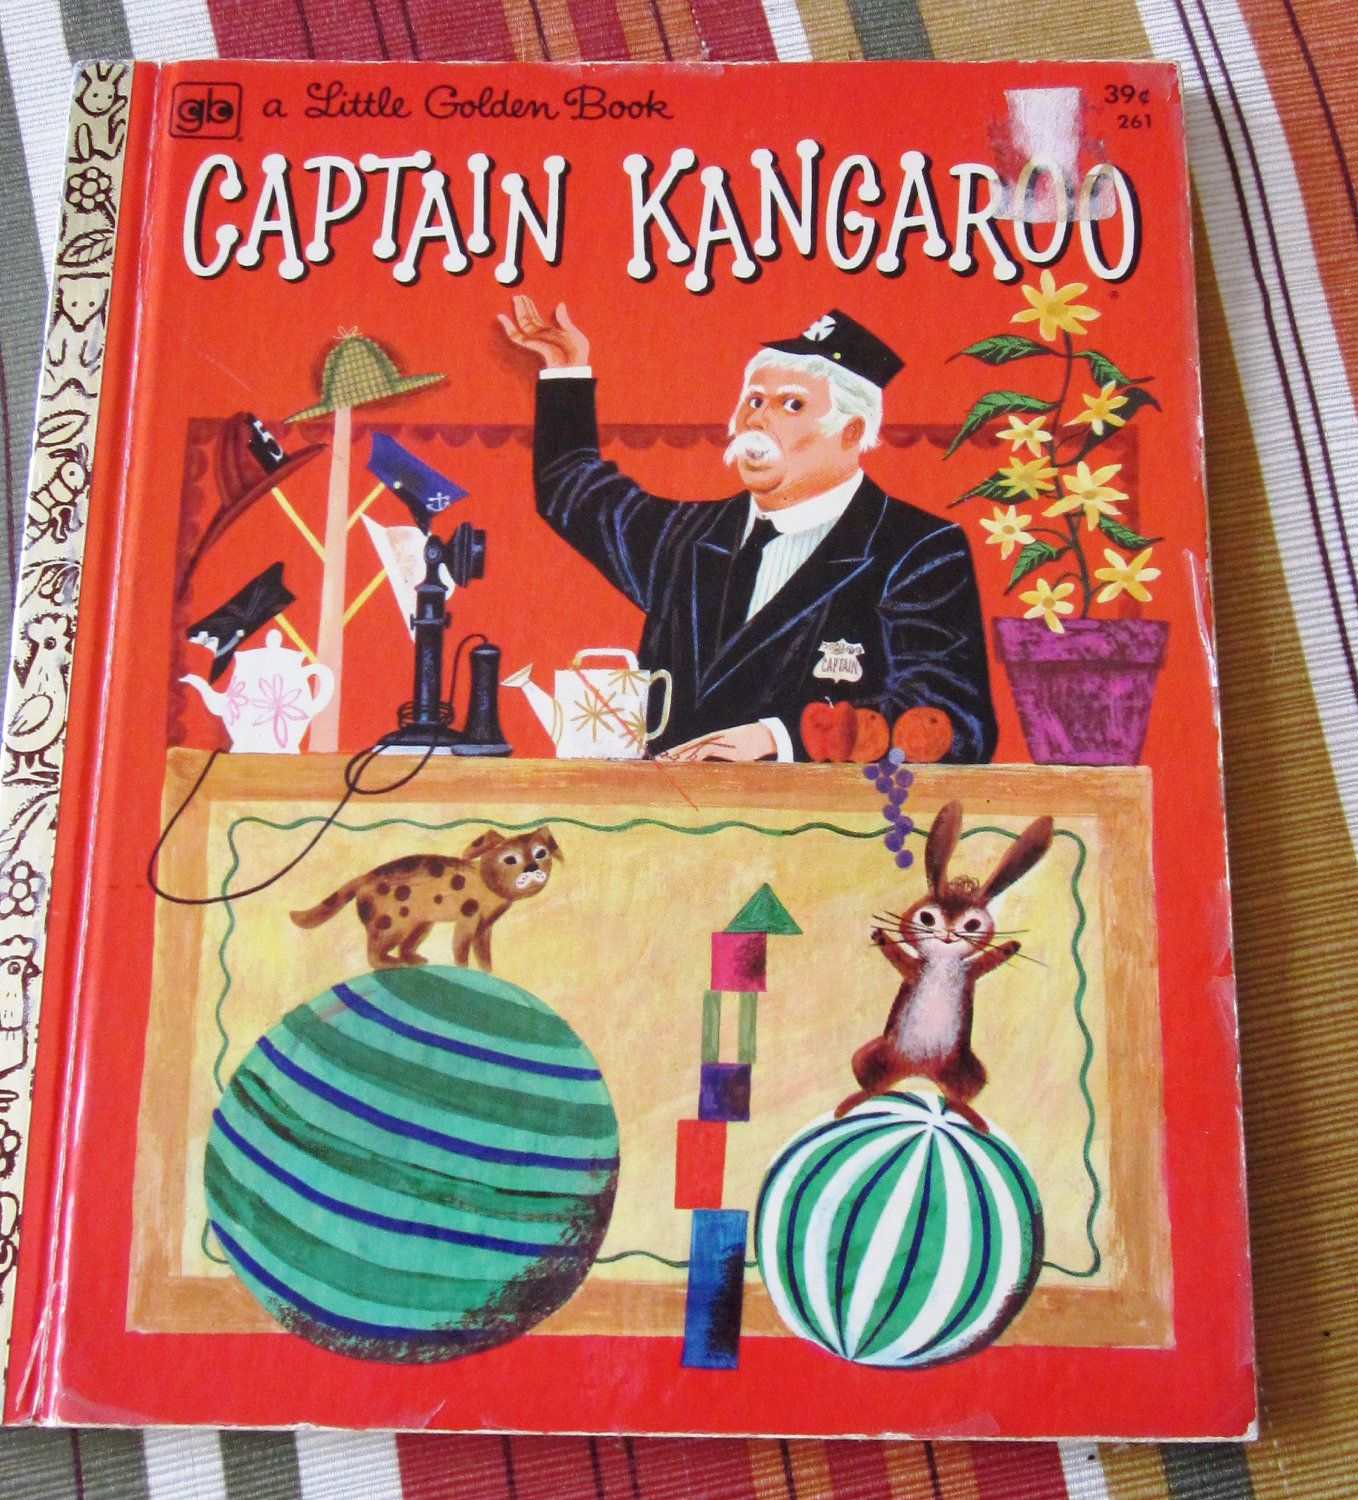 1972 Little Golden Book Captain Kangaroo